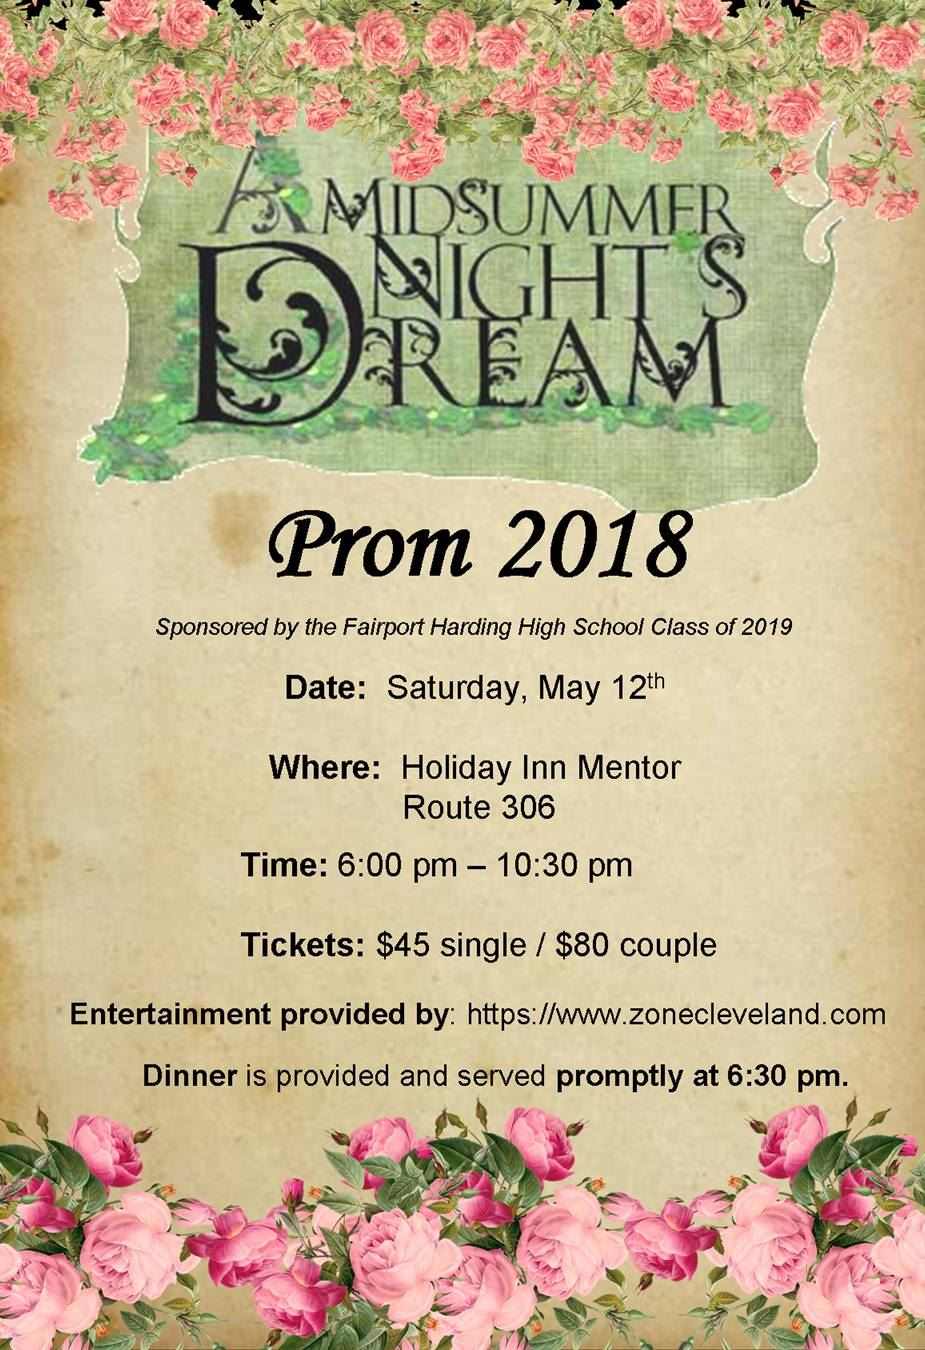 Fairport Harding High School Prom - May 12, 2018